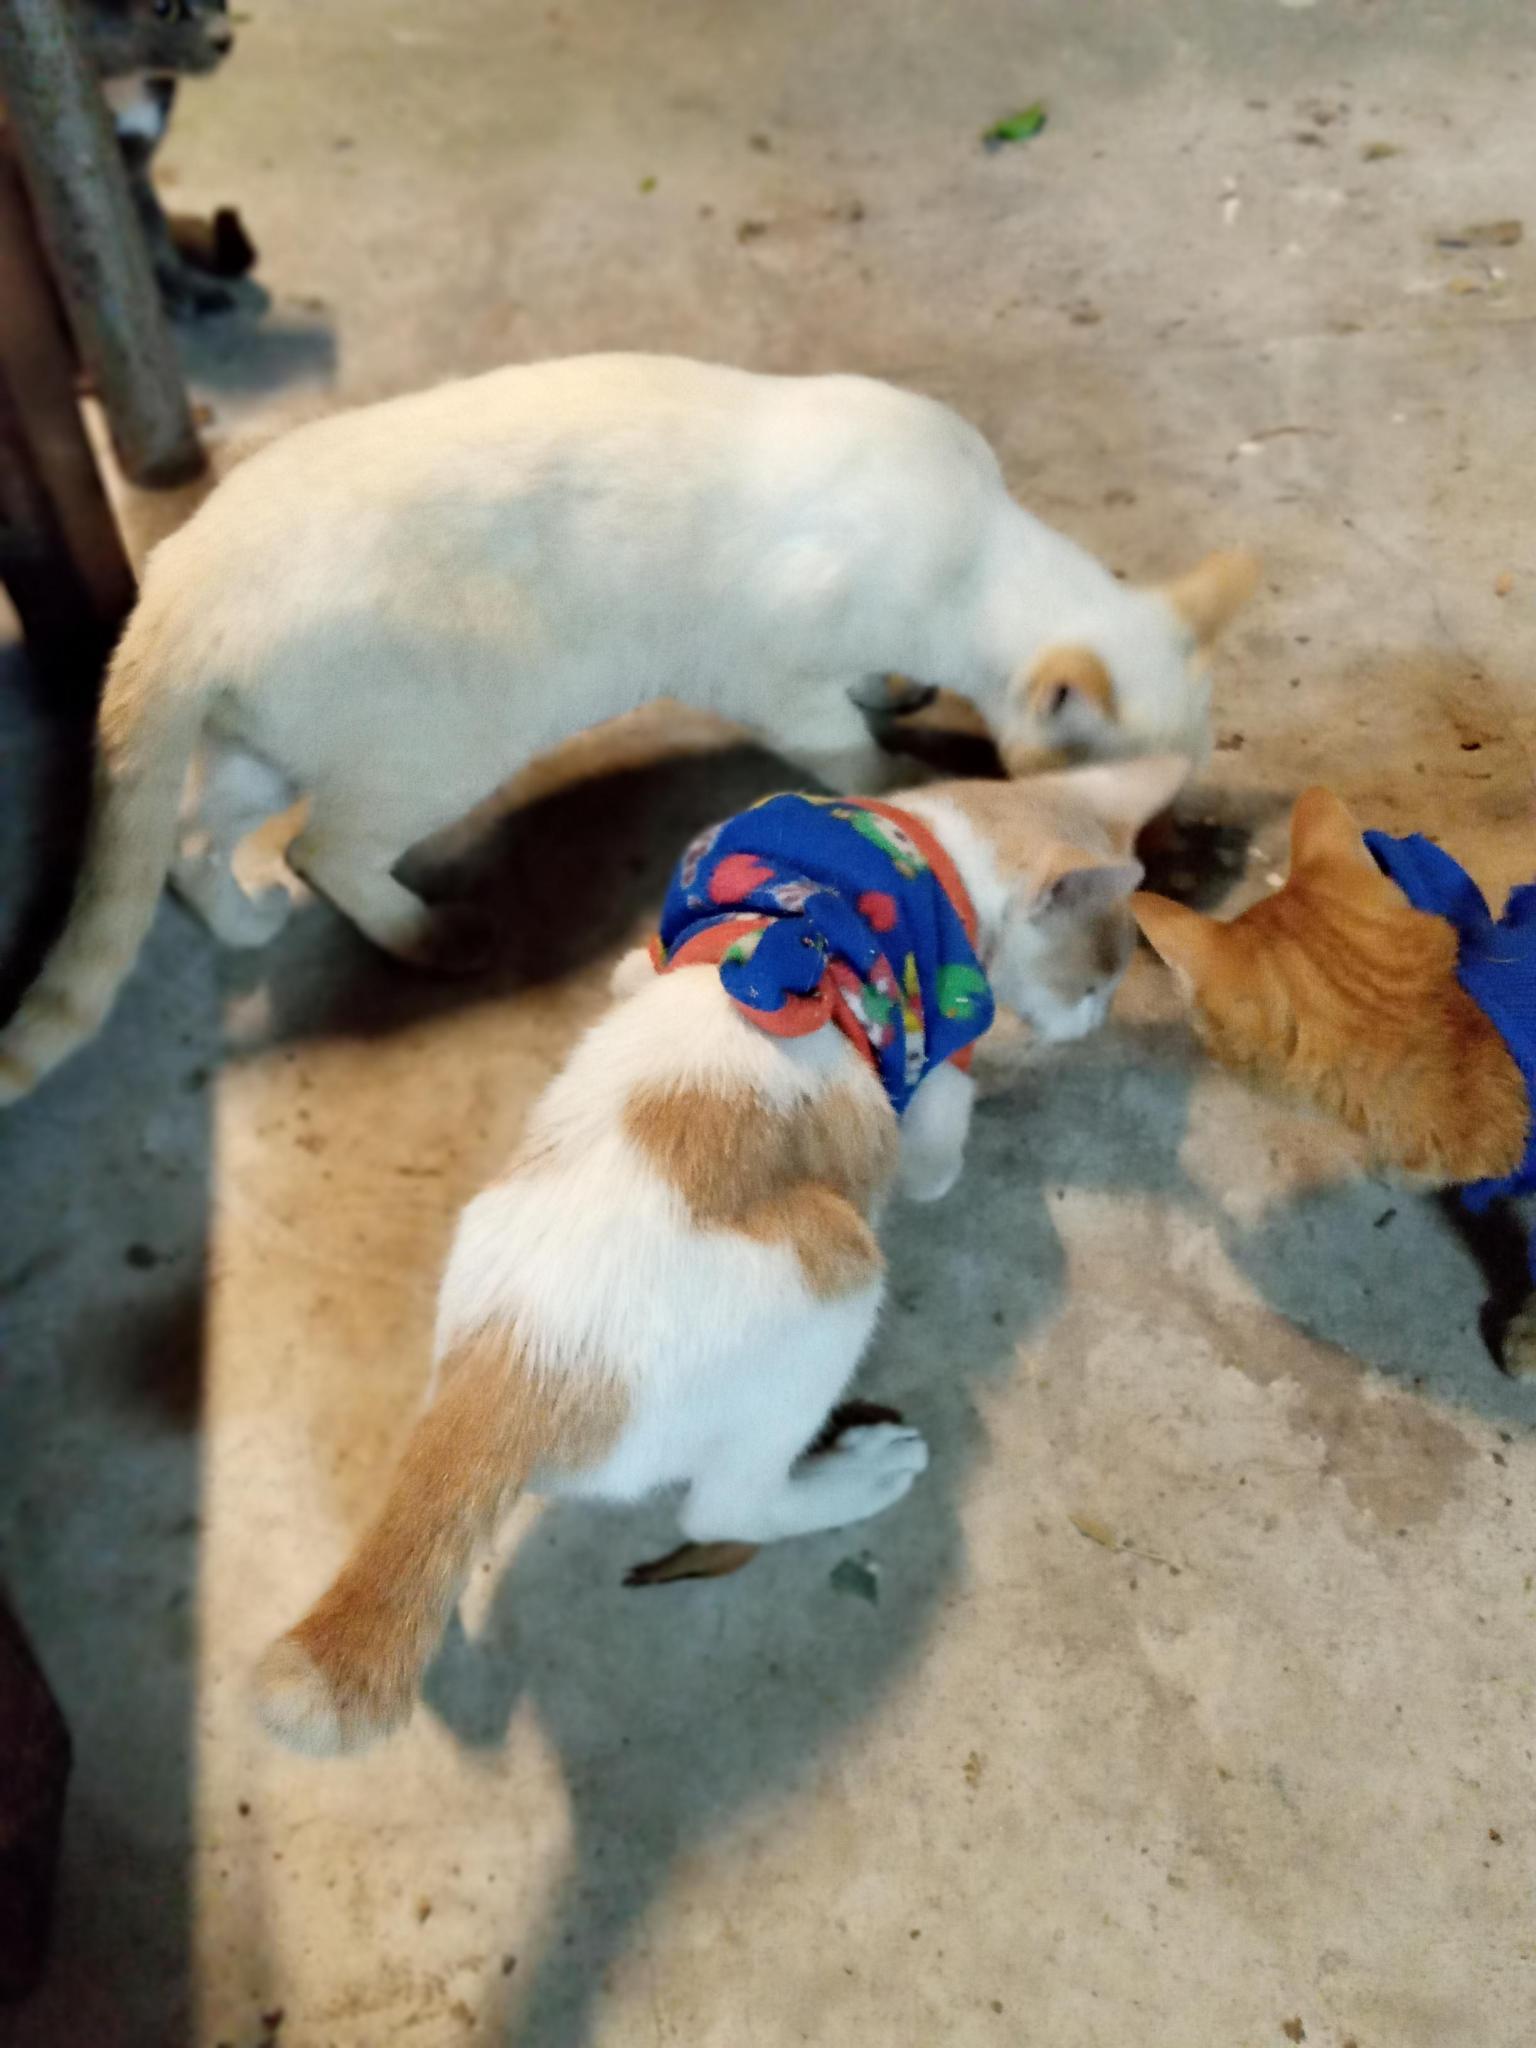 The Holiday Car Port Build with balls and cats-culpre-jpg